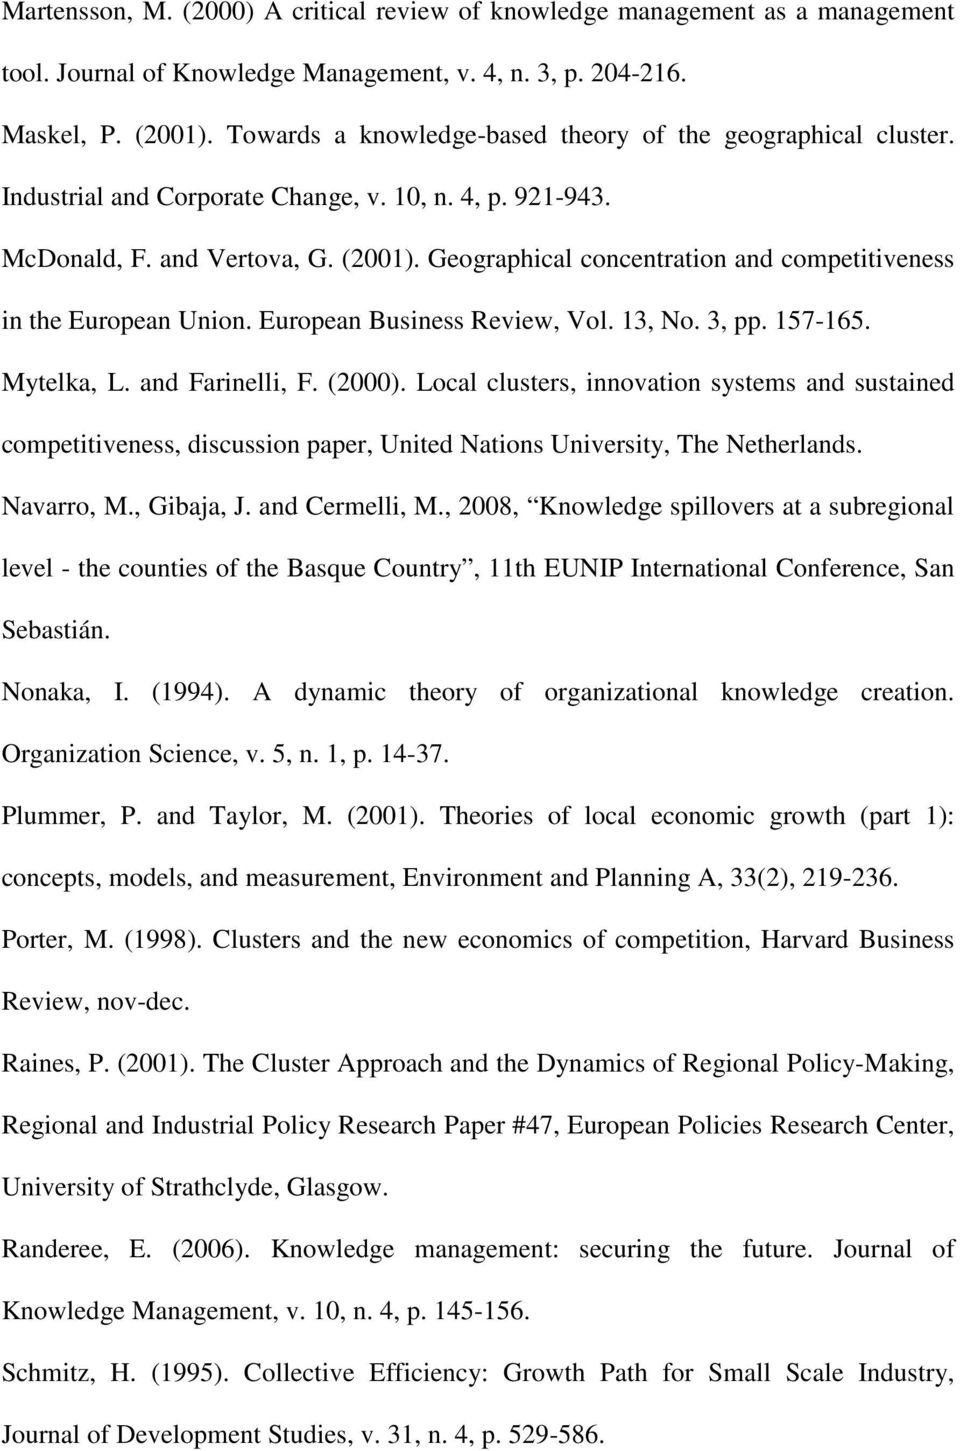 Geographical concentration and competitiveness in the European Union. European Business Review, Vol. 13, No. 3, pp. 157-165. Mytelka, L. and Farinelli, F. (2000).